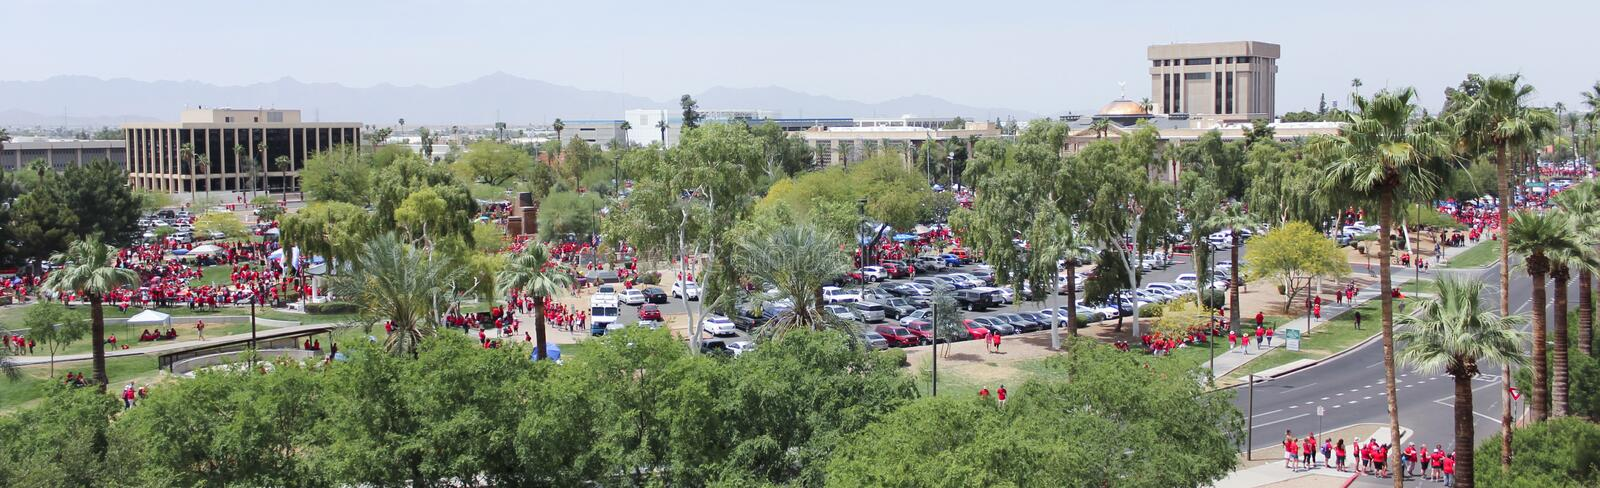 A Scene from the 2018 Red for Ed Teacher Strike in Arizona. PHOENIX, ARIZONA, MAY 30. The State Capitol Building on May 30, 2018, in Phoenix, Arizona. A Scene royalty free stock photography